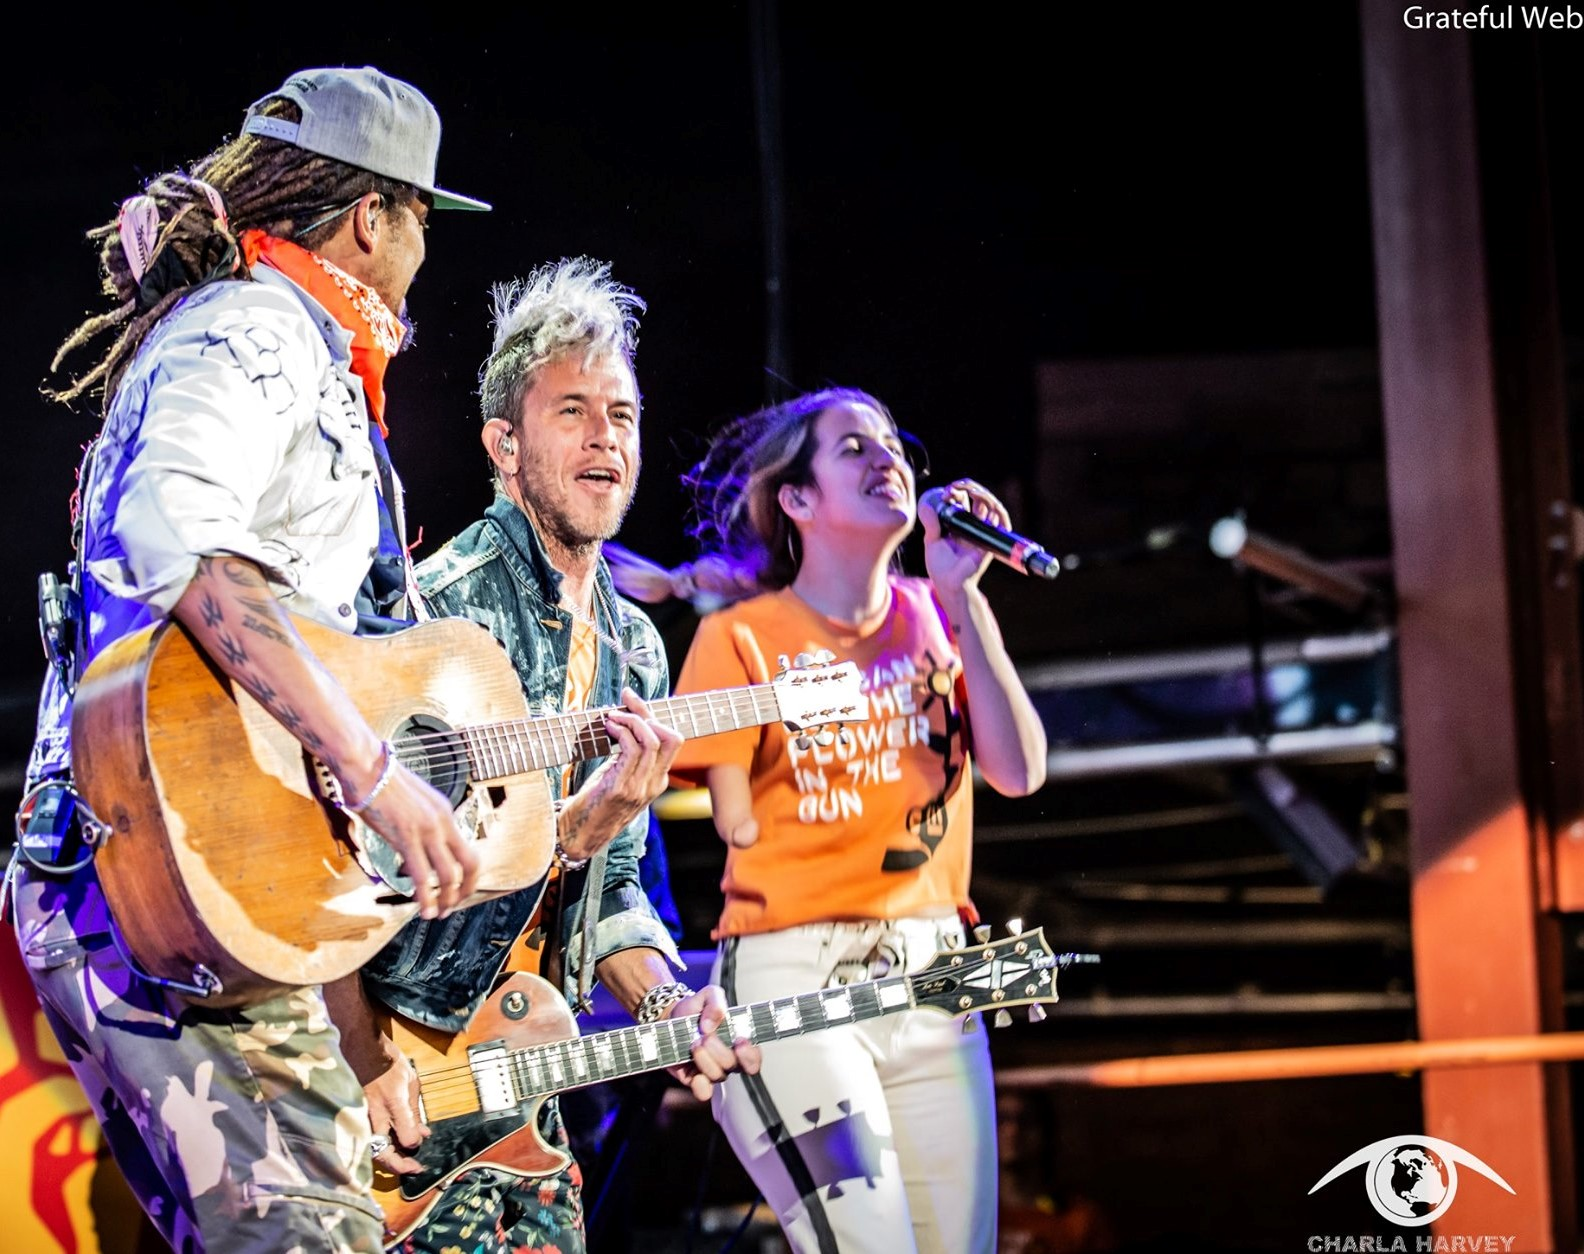 Victoria Canal with Michael Franti & Spearhead